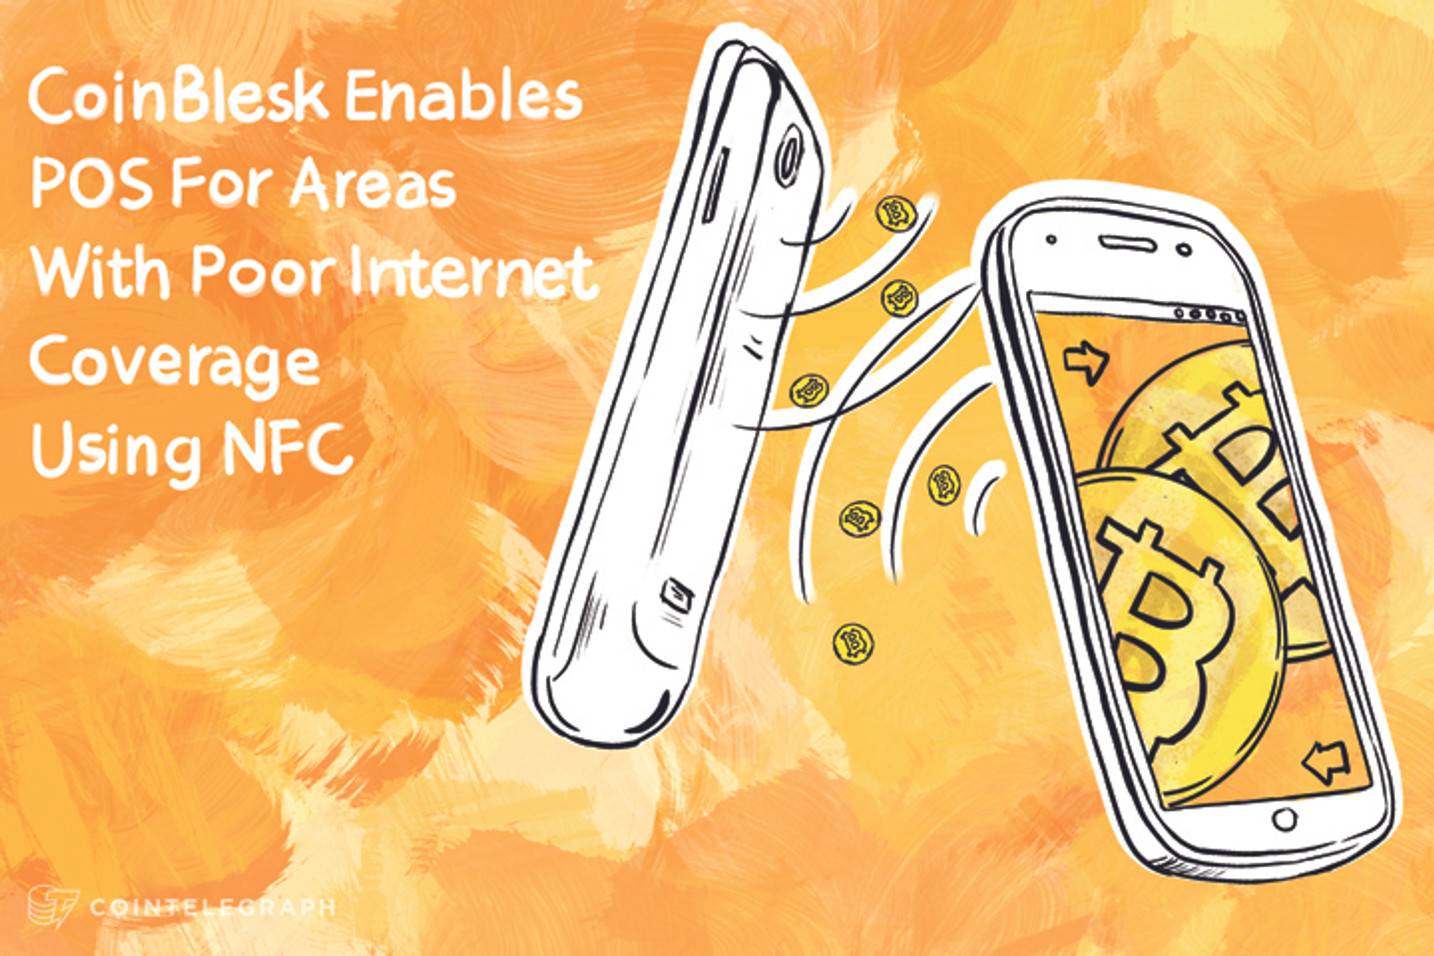 CoinBlesk Brings POS To Areas With Poor Internet Connection Using NFC